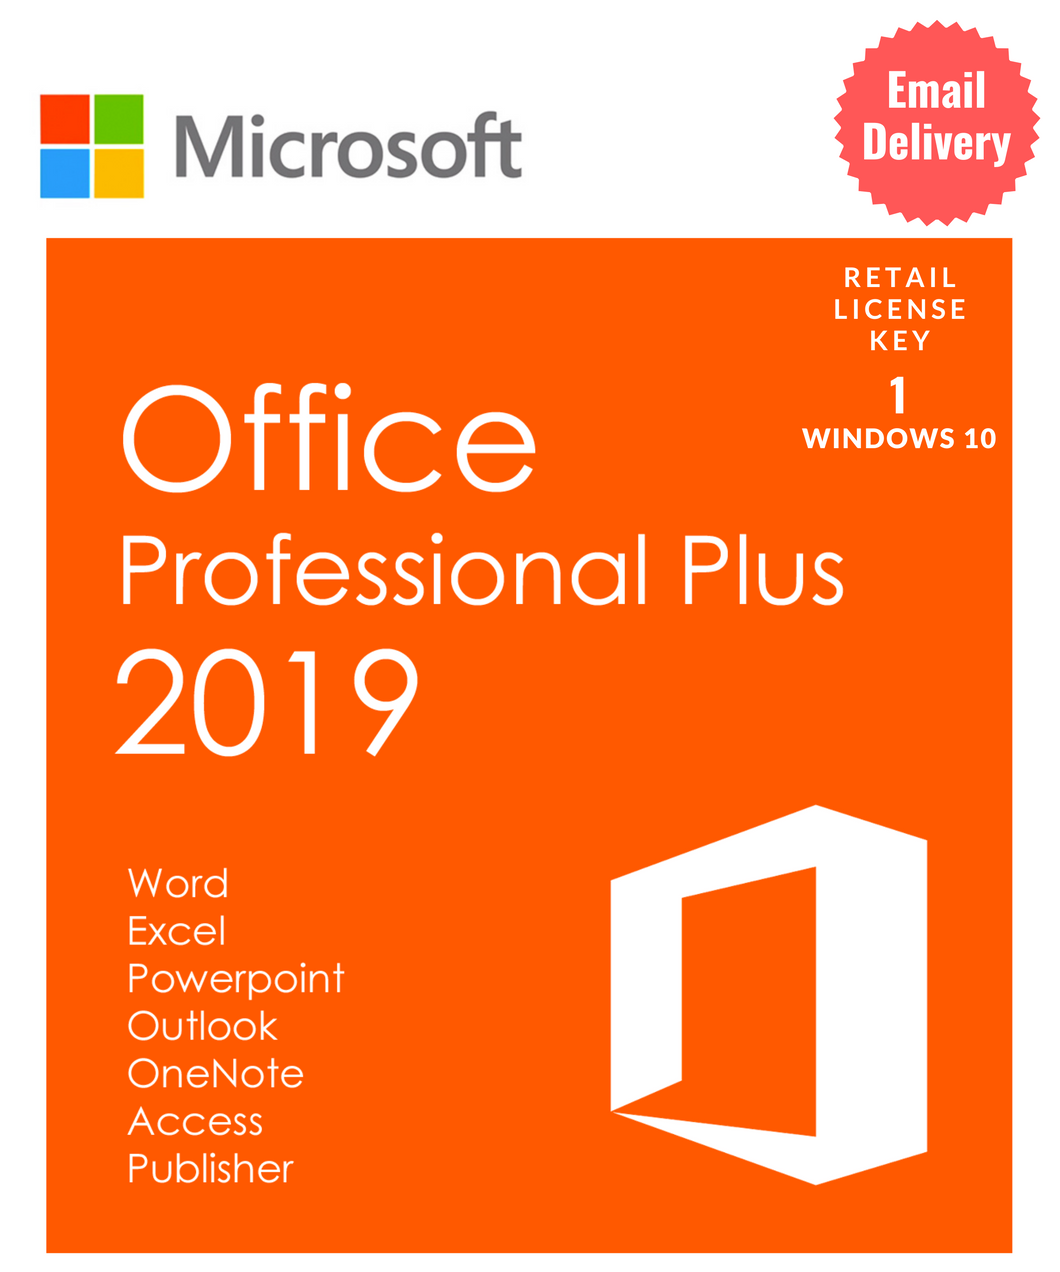 Office 2019 Pro Plus 32/64 bit Retail Key Lifetime